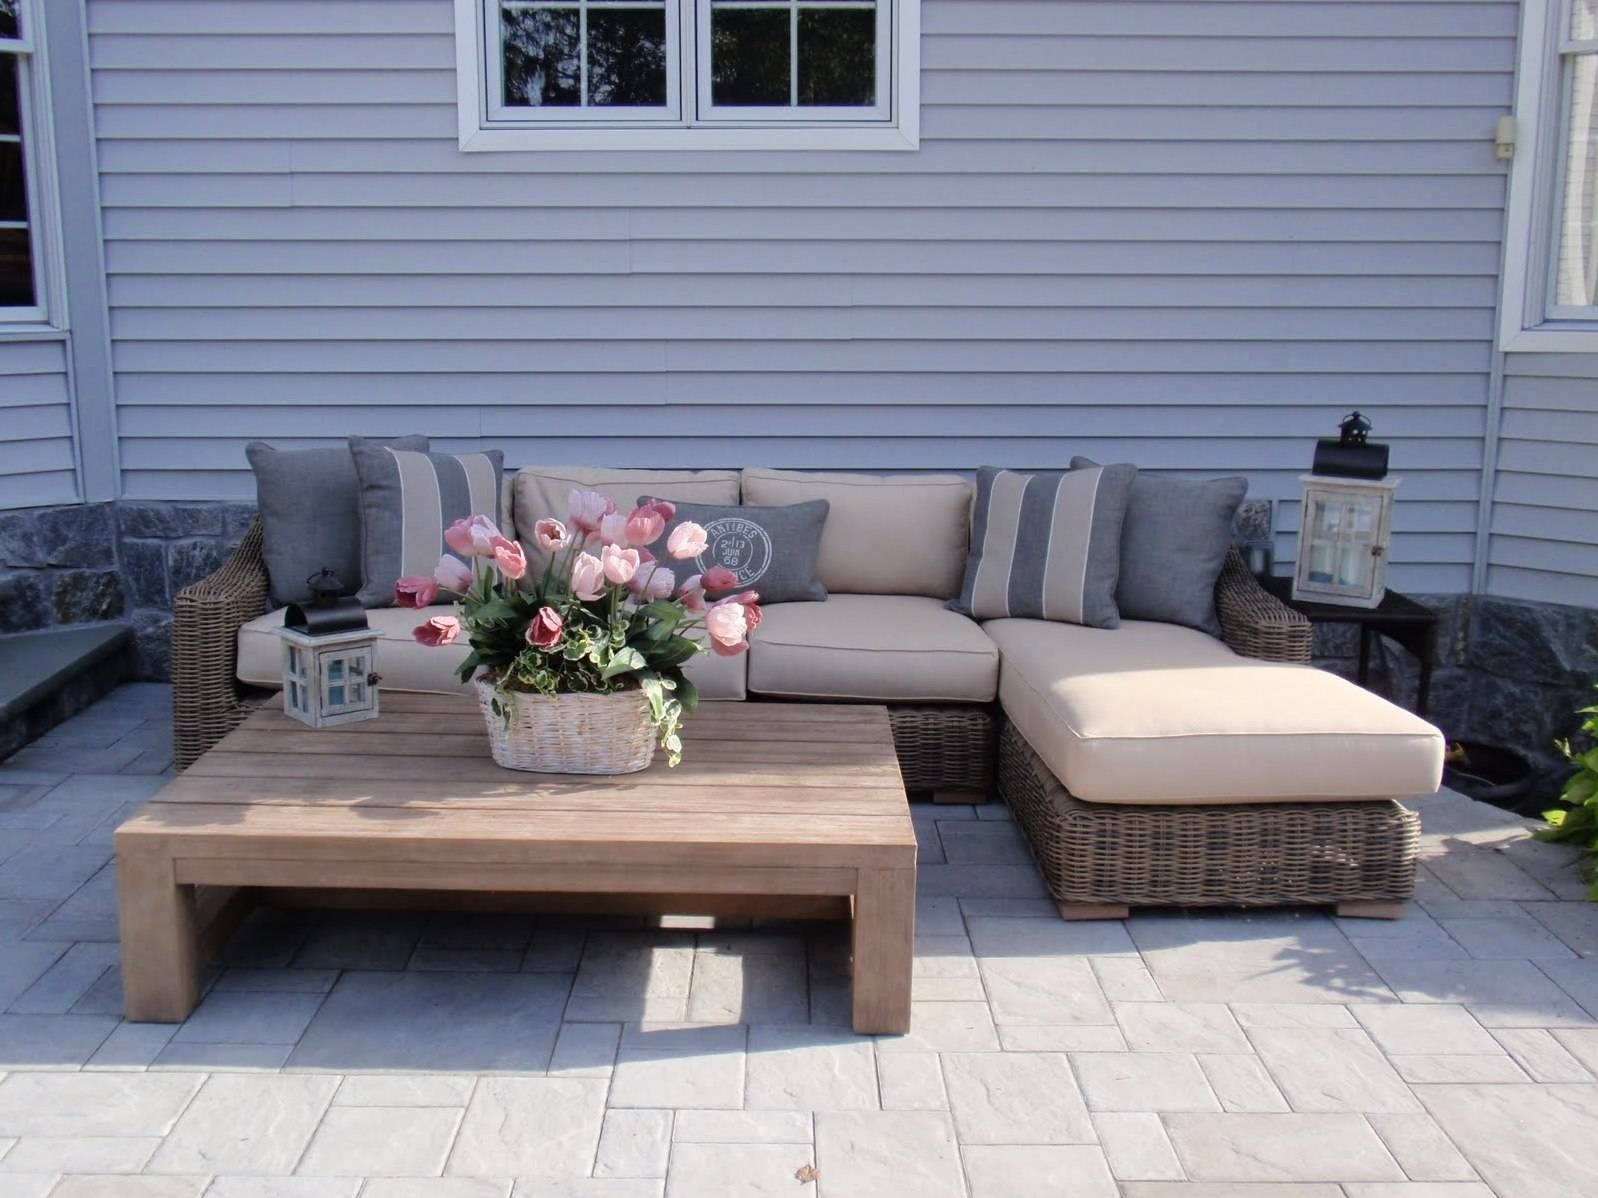 Project Plan For Outdoor Coffee Table – Outdoor Furniture Coffee for Low Square Wooden Coffee Tables (Image 27 of 30)